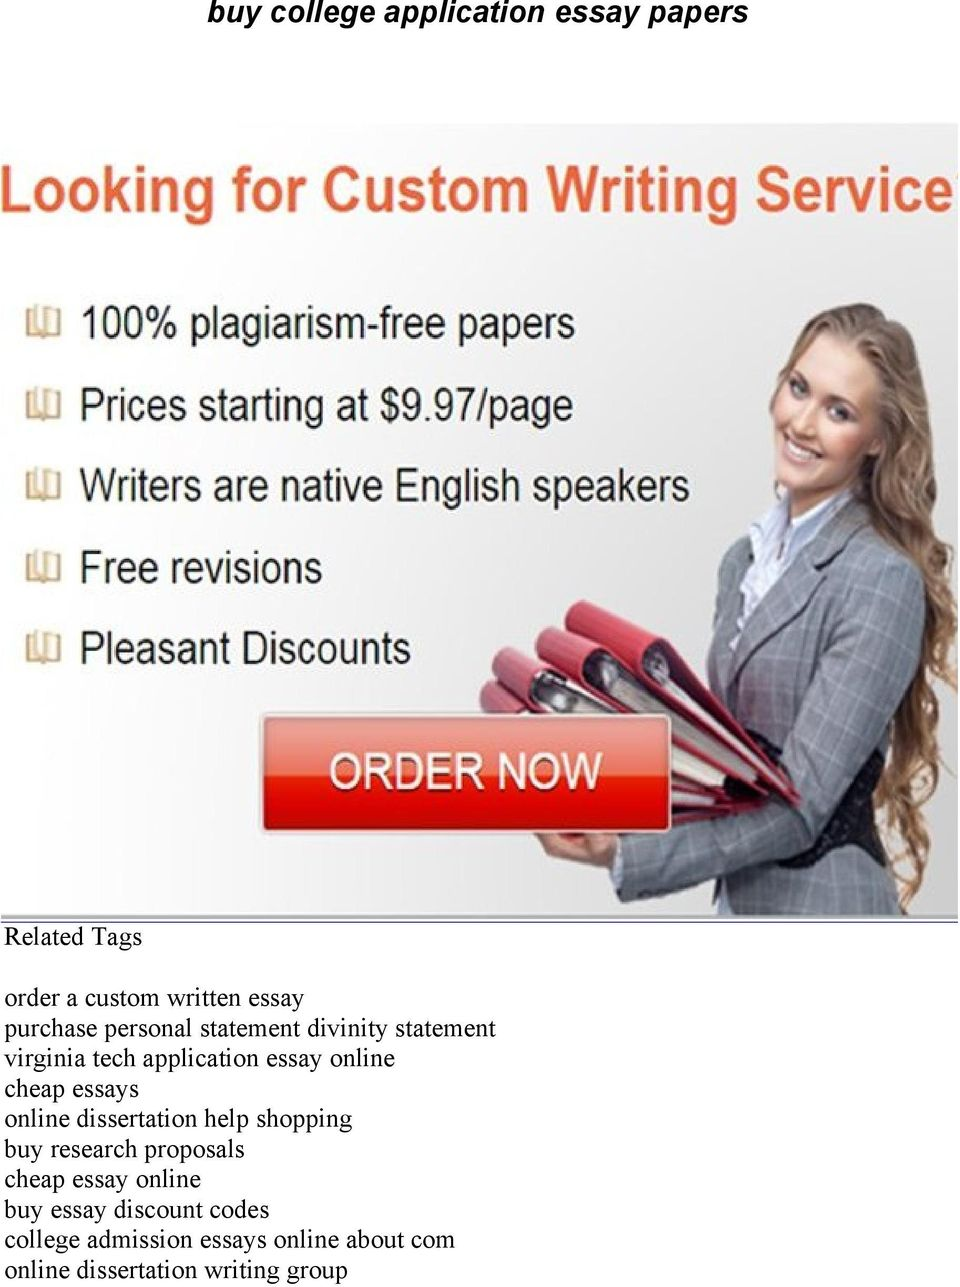 essays online dissertation help shopping buy research proposals cheap essay online buy